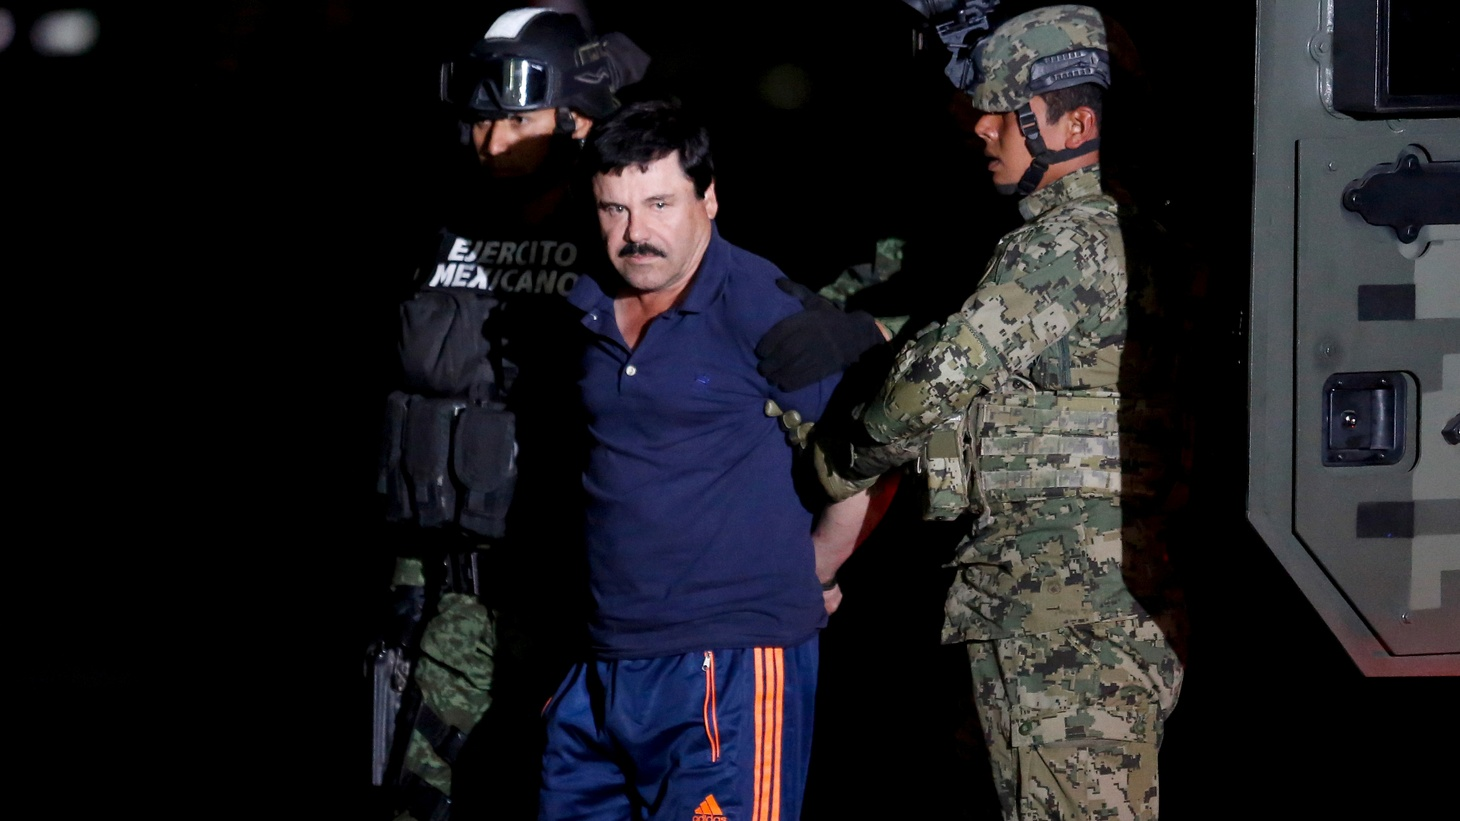 """Joaquin """"El Chapo"""" Guzman is escorted by soldiers during a presentation in Mexico City, January 8, 2016."""